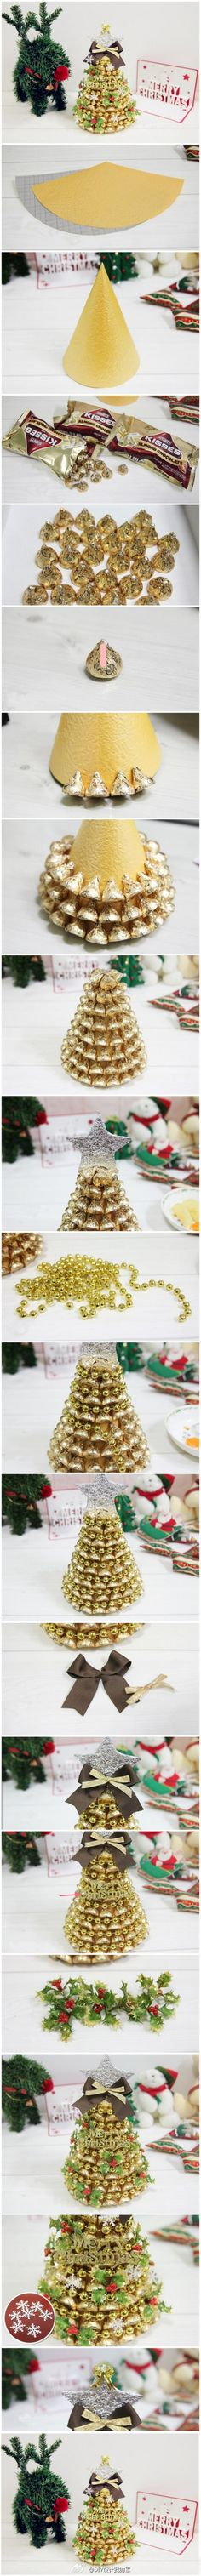 chocolate kisses Christmas tree. Maybe Aussies can do a ferrero rocher tree?